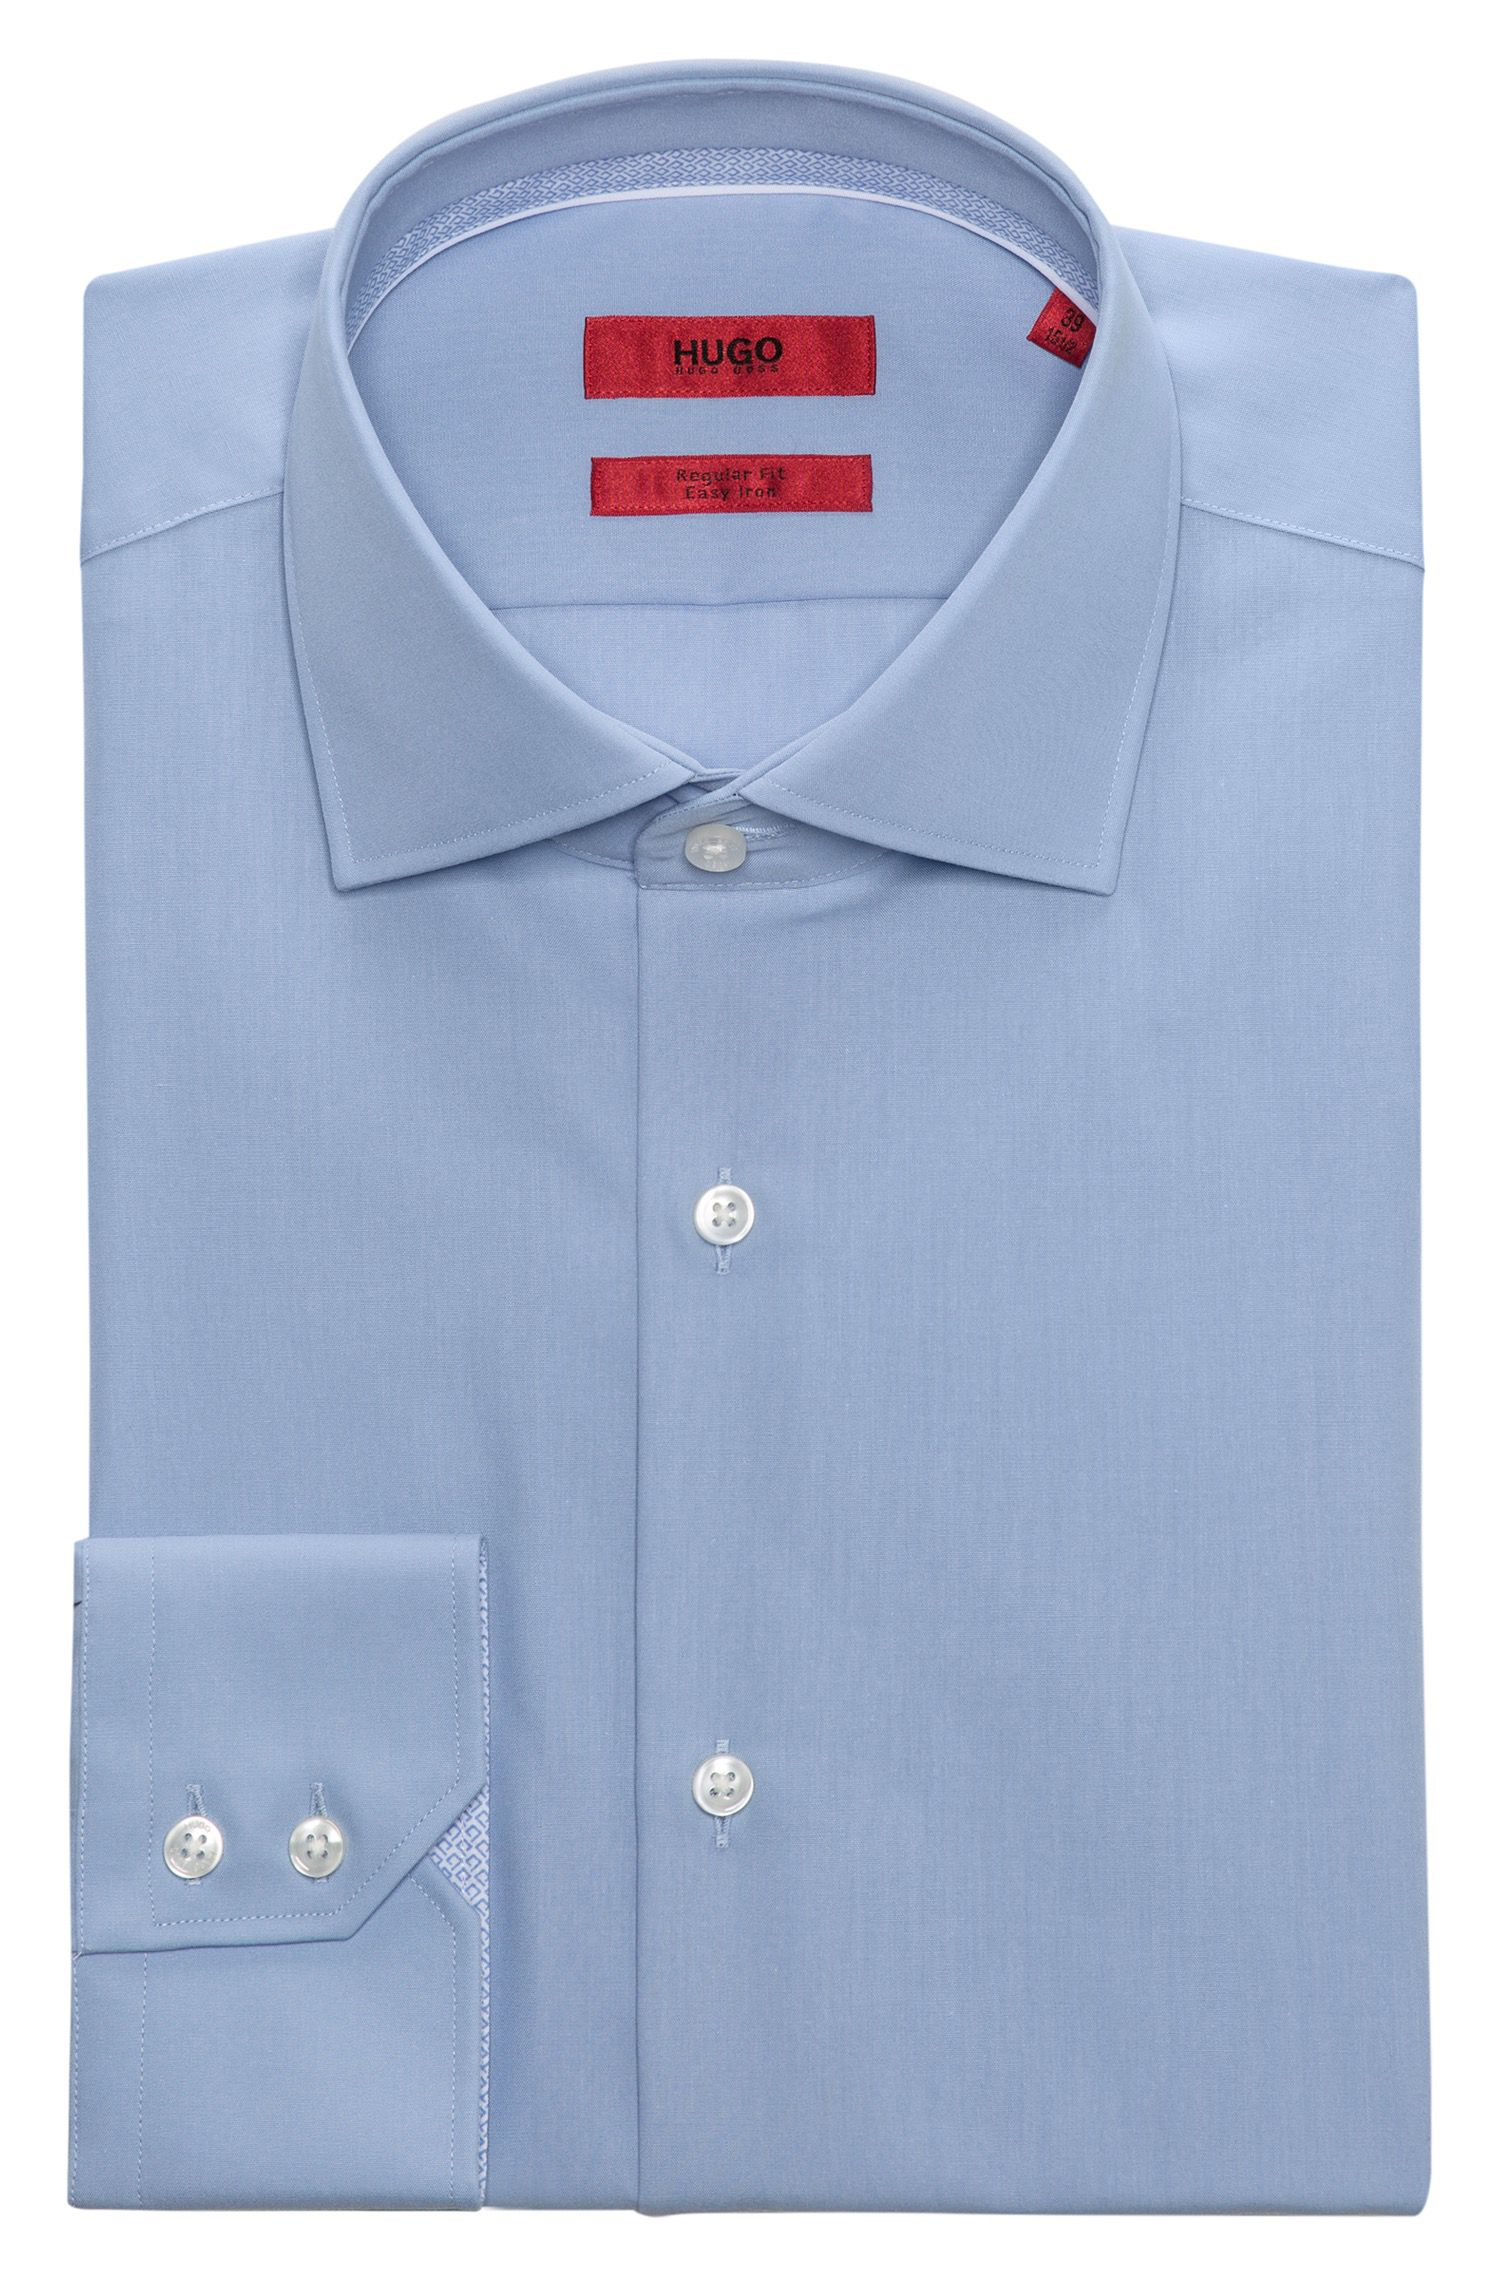 Camicia regular fit in cotone facile da stirare con colletto alla francese